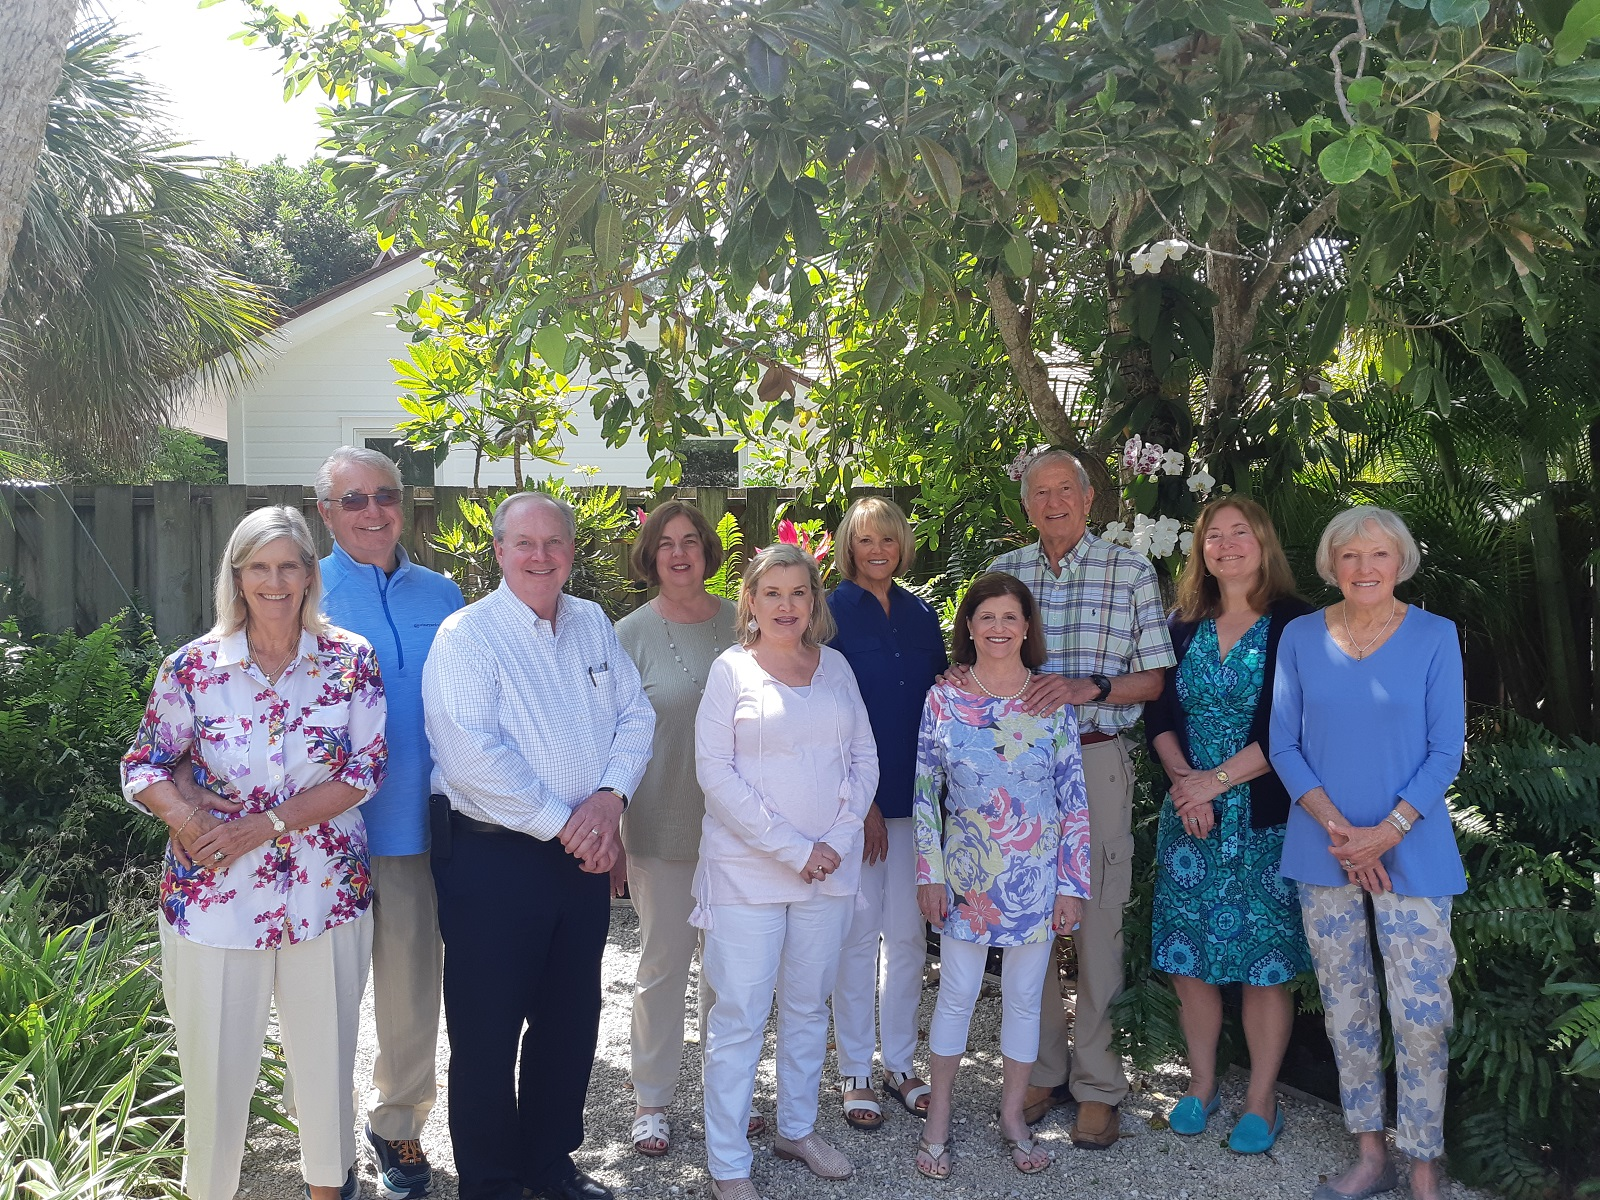 Members of AWA Board and Council in Florida